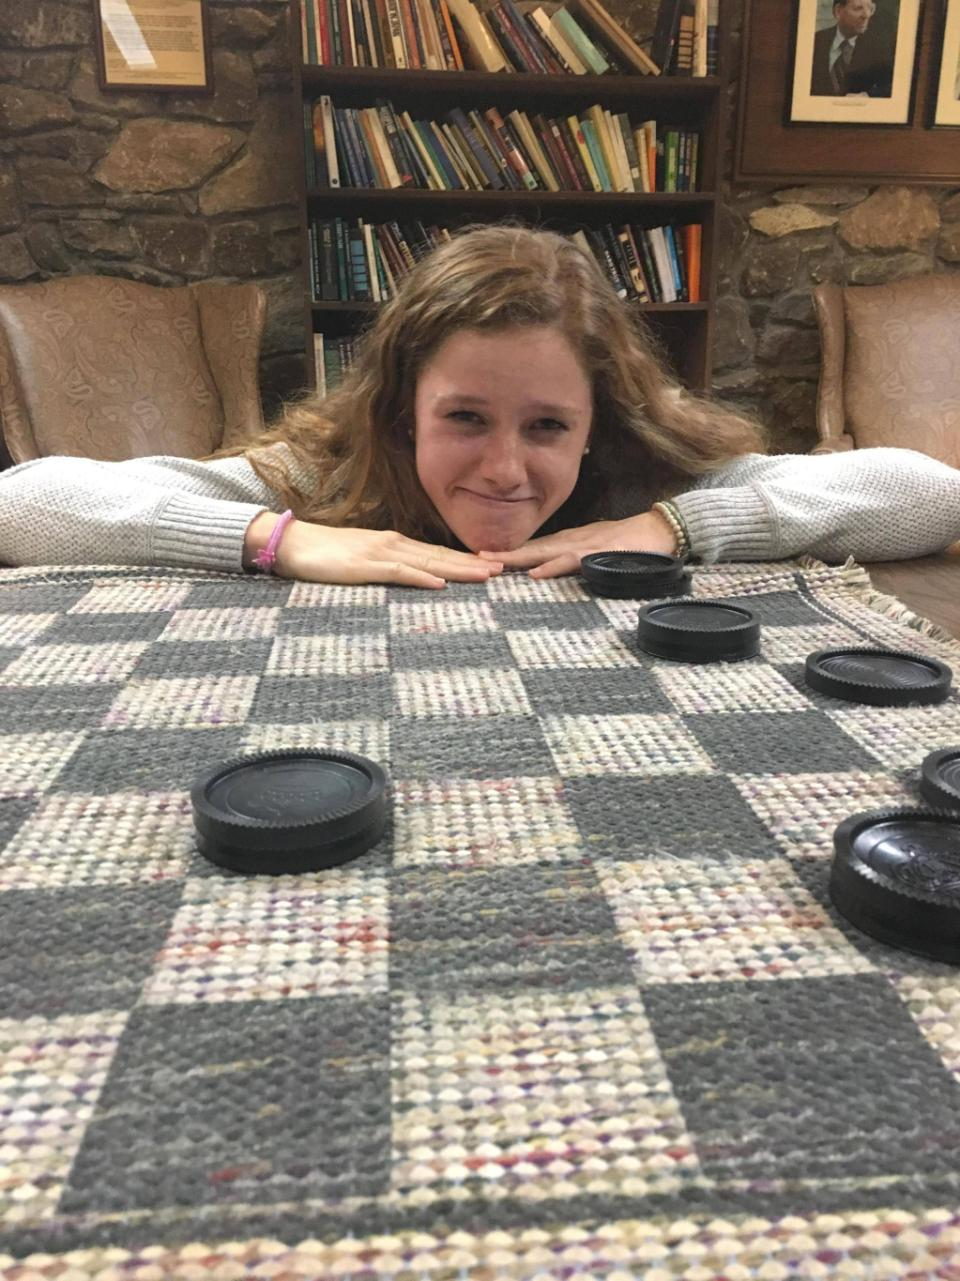 thanksgiving checkers loss 7 Every Thanksgiving His Cousin Challenges Him to Checkers... 8 Years of Defeat and Counting